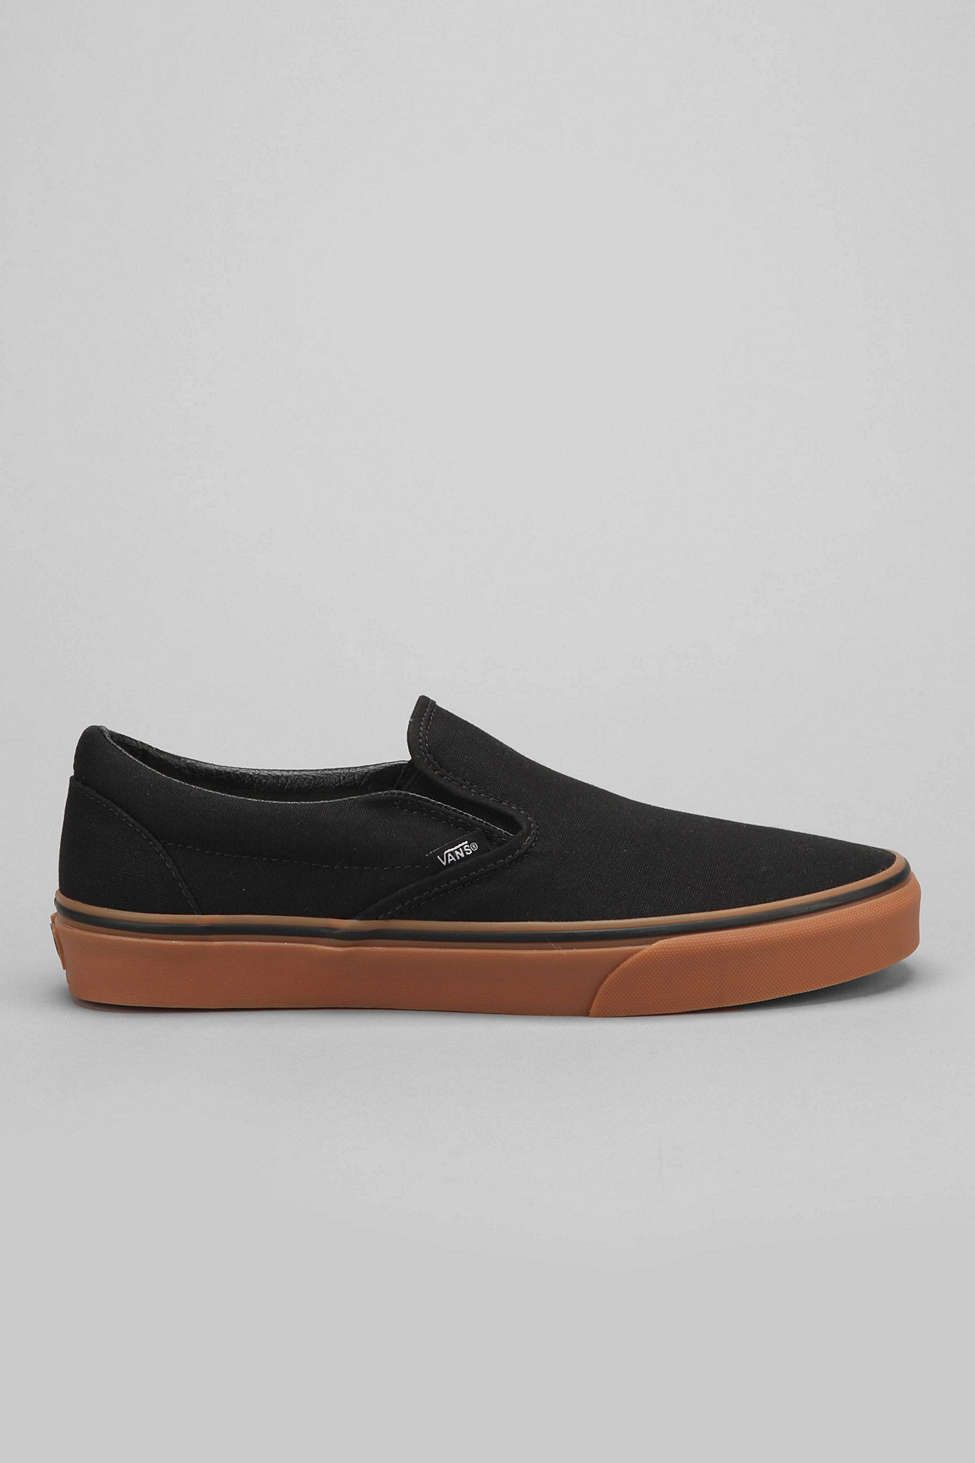 191139c9da08 Vans Classic Gum-Sole Slip-On Men s Sneaker